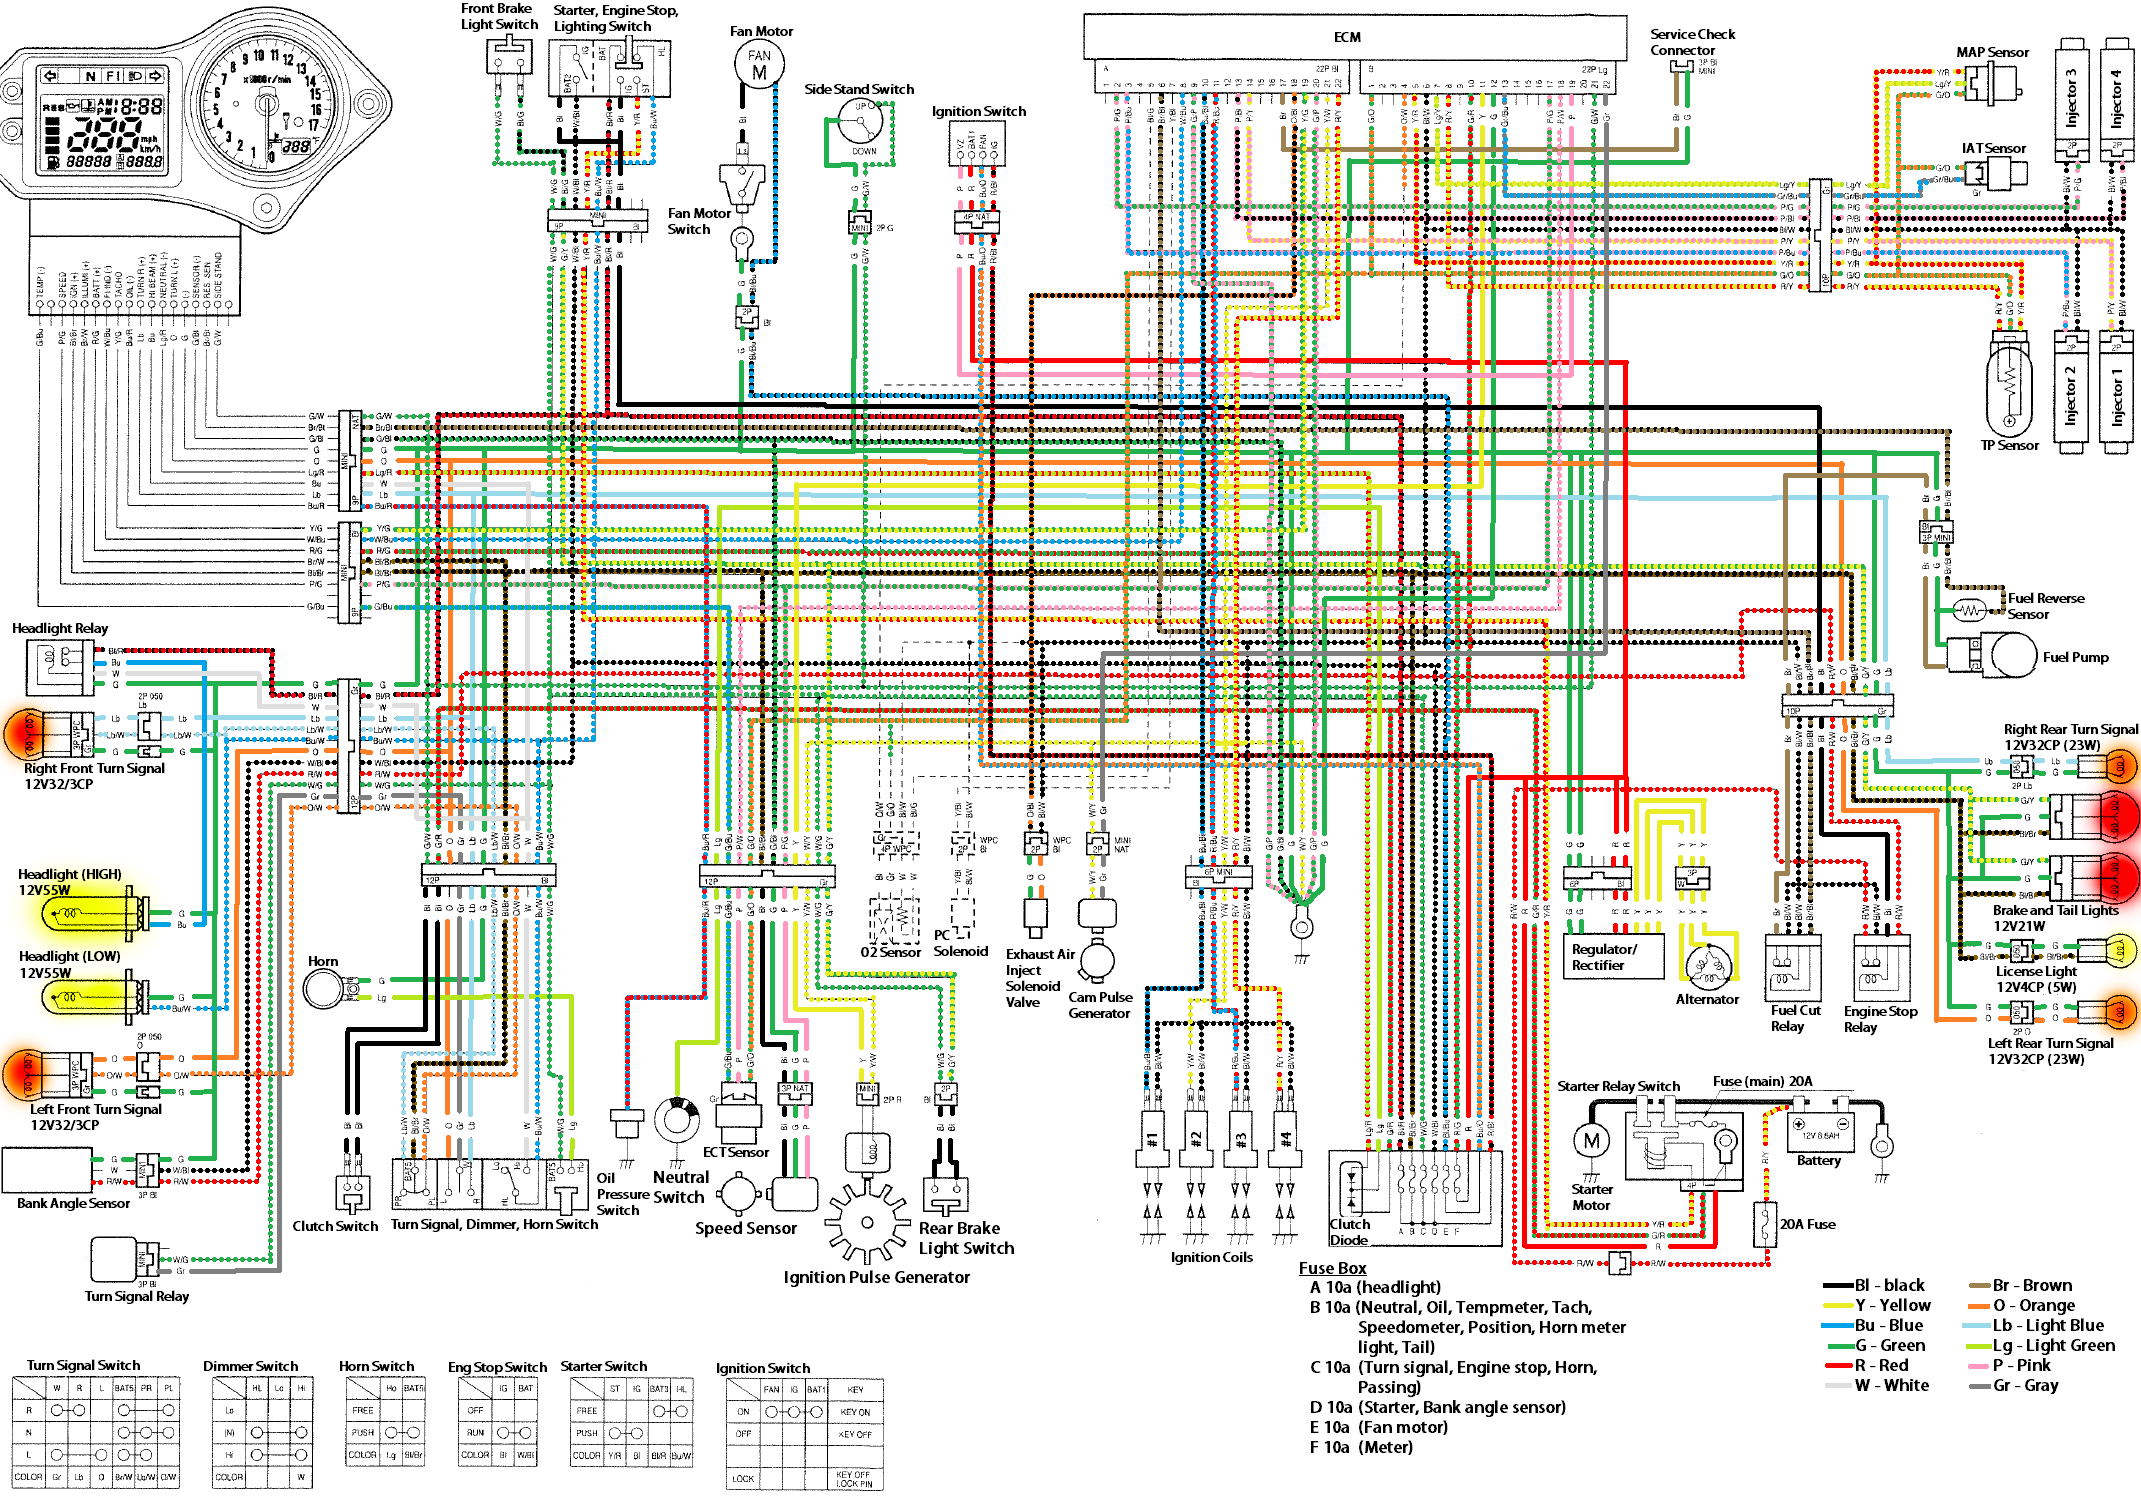 Wiring_diagram_cbr600f4i_2001 2003_color?quality\\\\\\=80\\\\\\&strip\\\\\\=all diagrams 620271 johnson ignition wiring diagram 2001 ignition Johnson Ignition Switch Wiring Diagram at bayanpartner.co